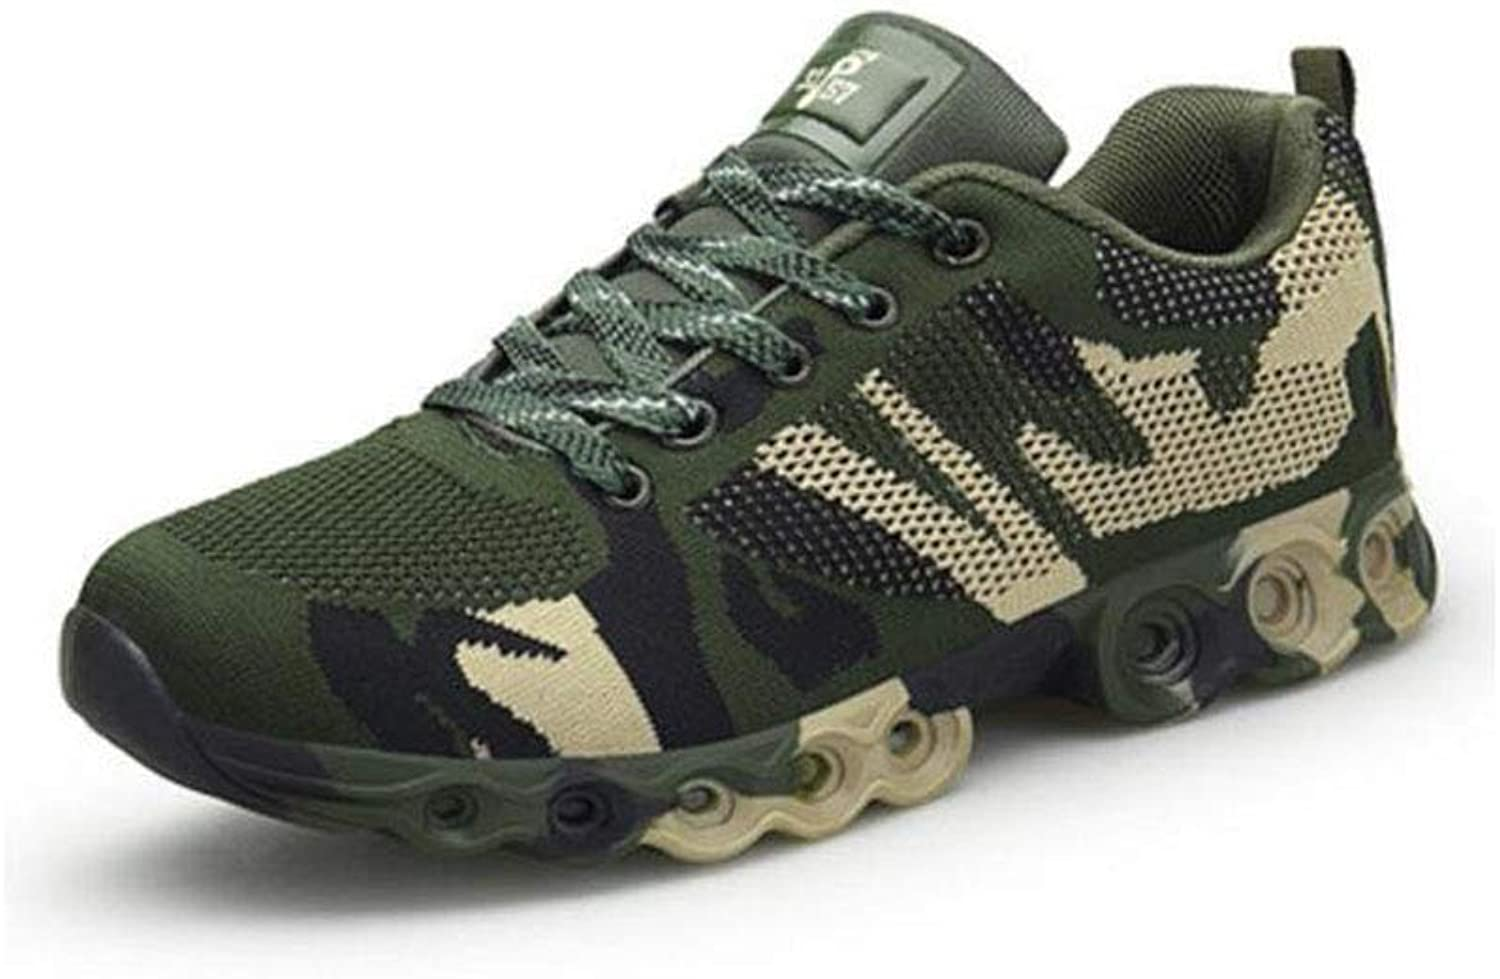 FH Camouflage Military Training shoes Men's Running shoes Super Light Breathable Outdoor Hiking shoes Training shoes